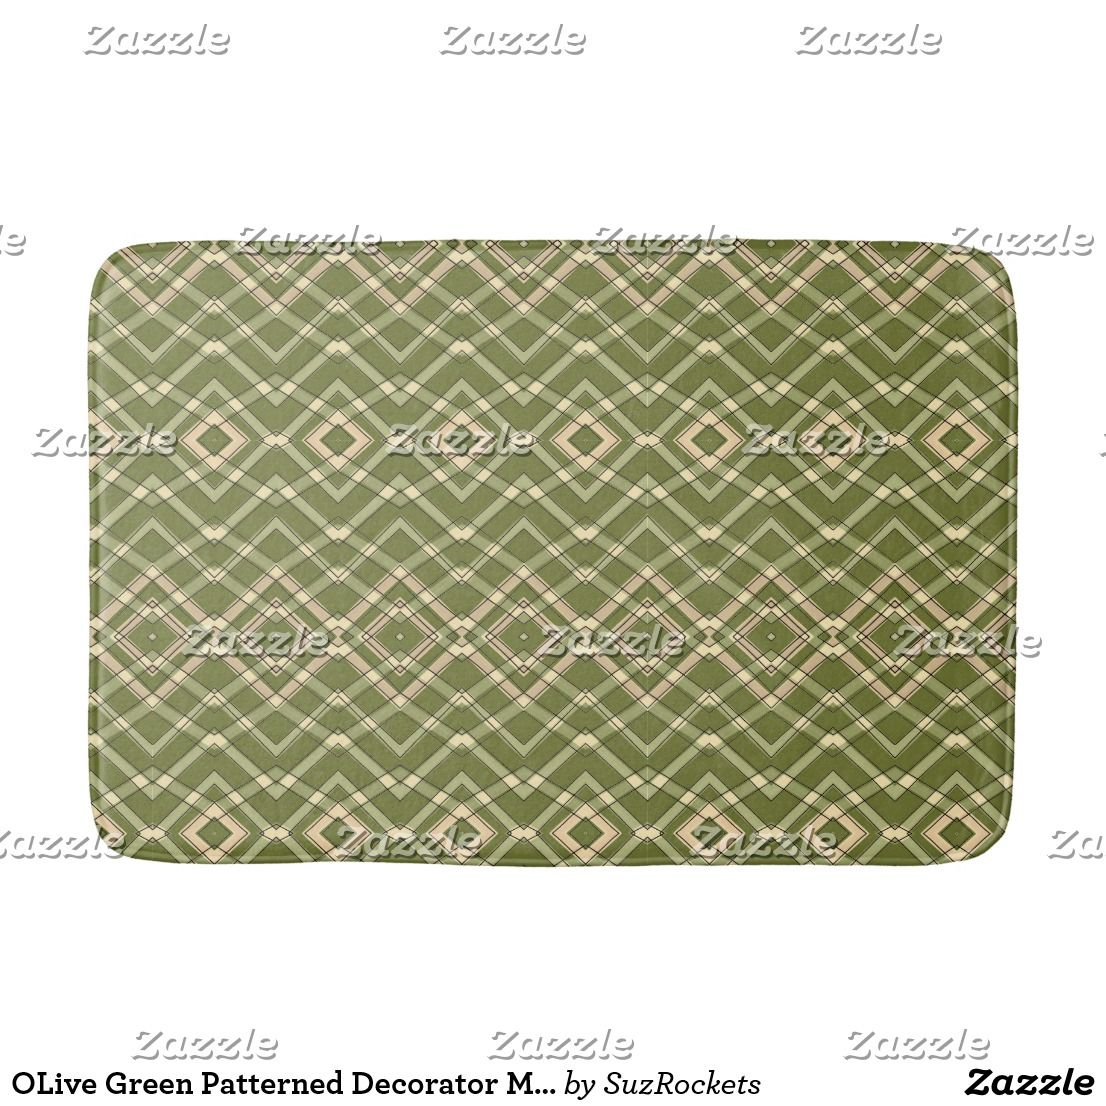 Olive Green Patterned Decorator Mat Zazzle Com Bath Mats